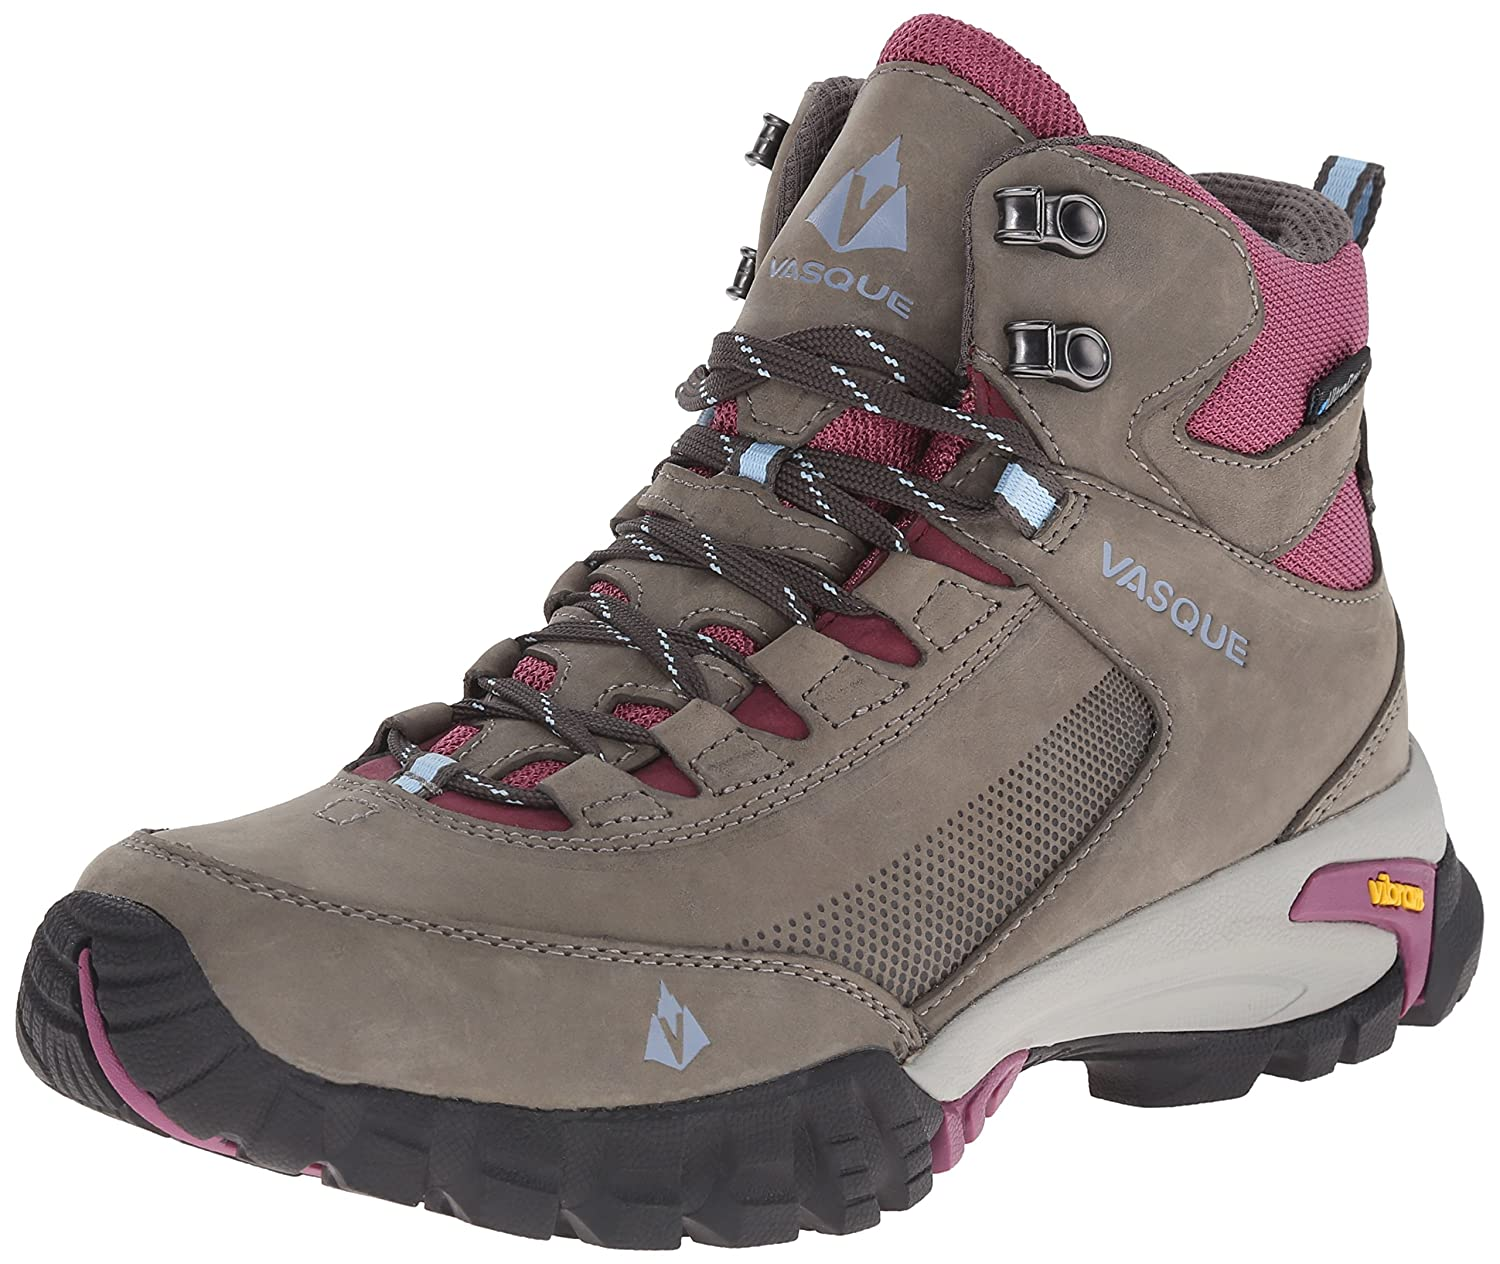 Vasque Women's Talus Trek UltraDry Hiking Boot Talus Trek UltraDry-Wmn